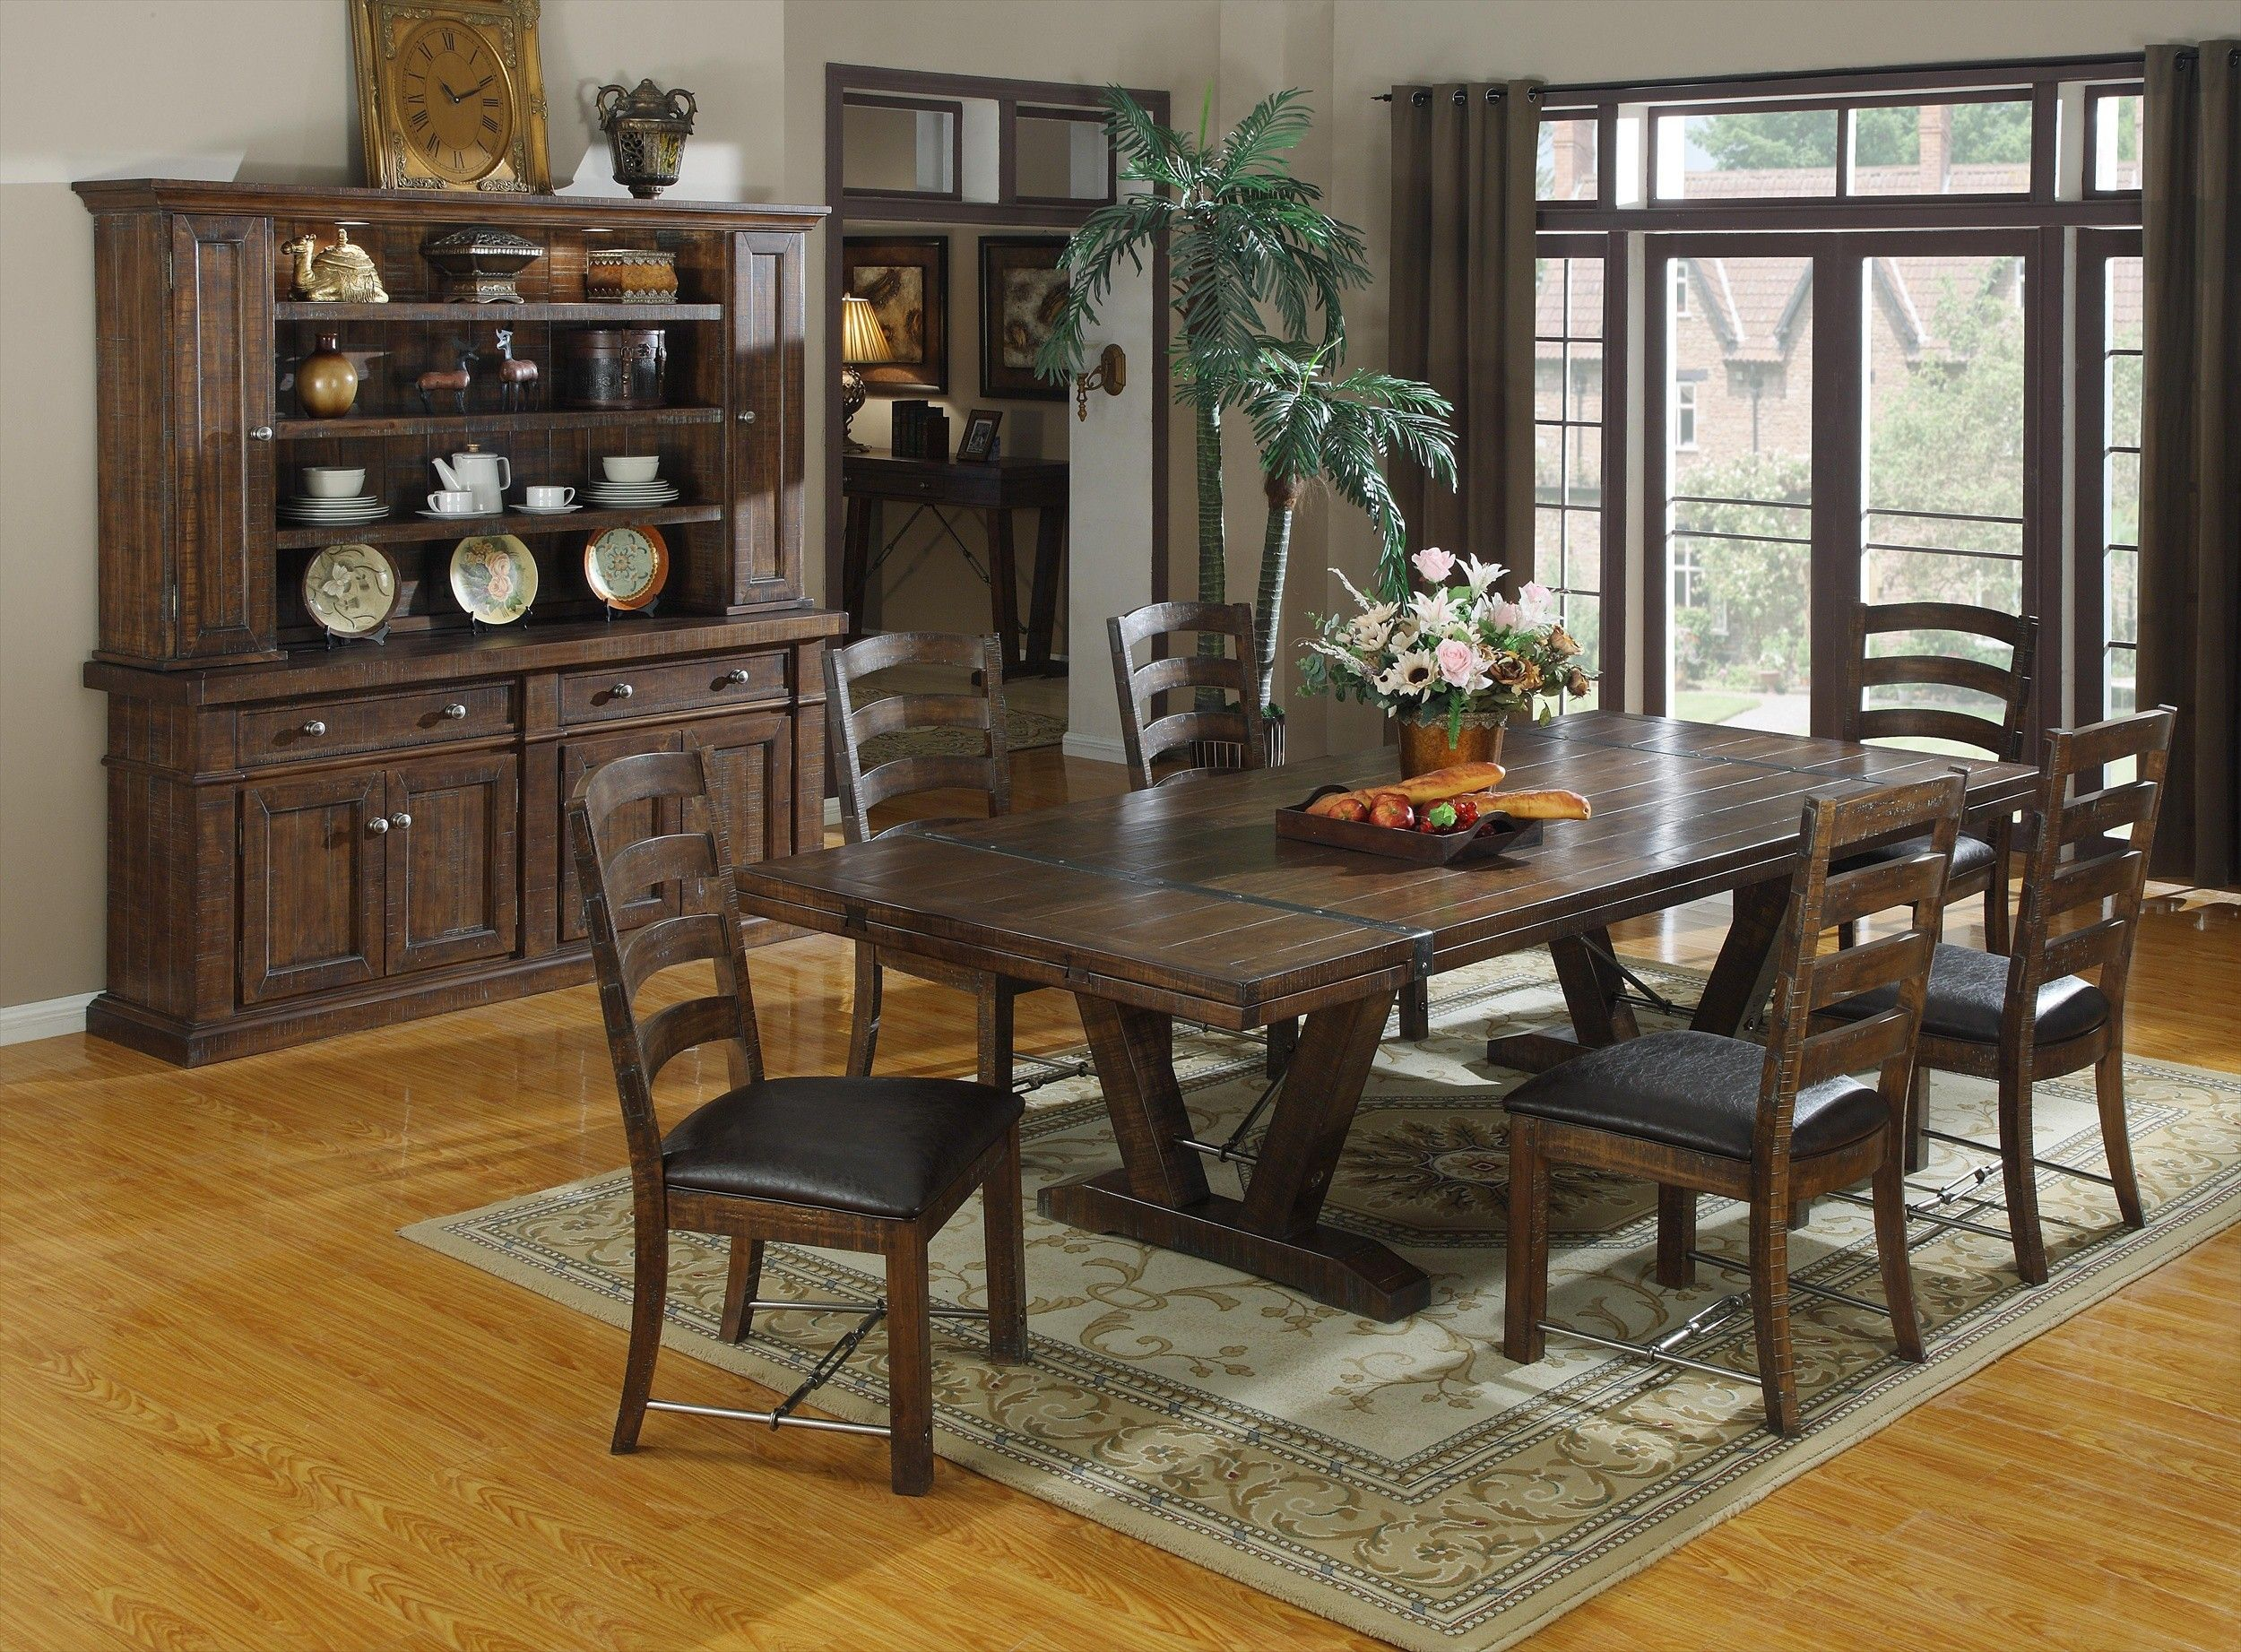 Rustic dining room furniture with luxury design for attractive and